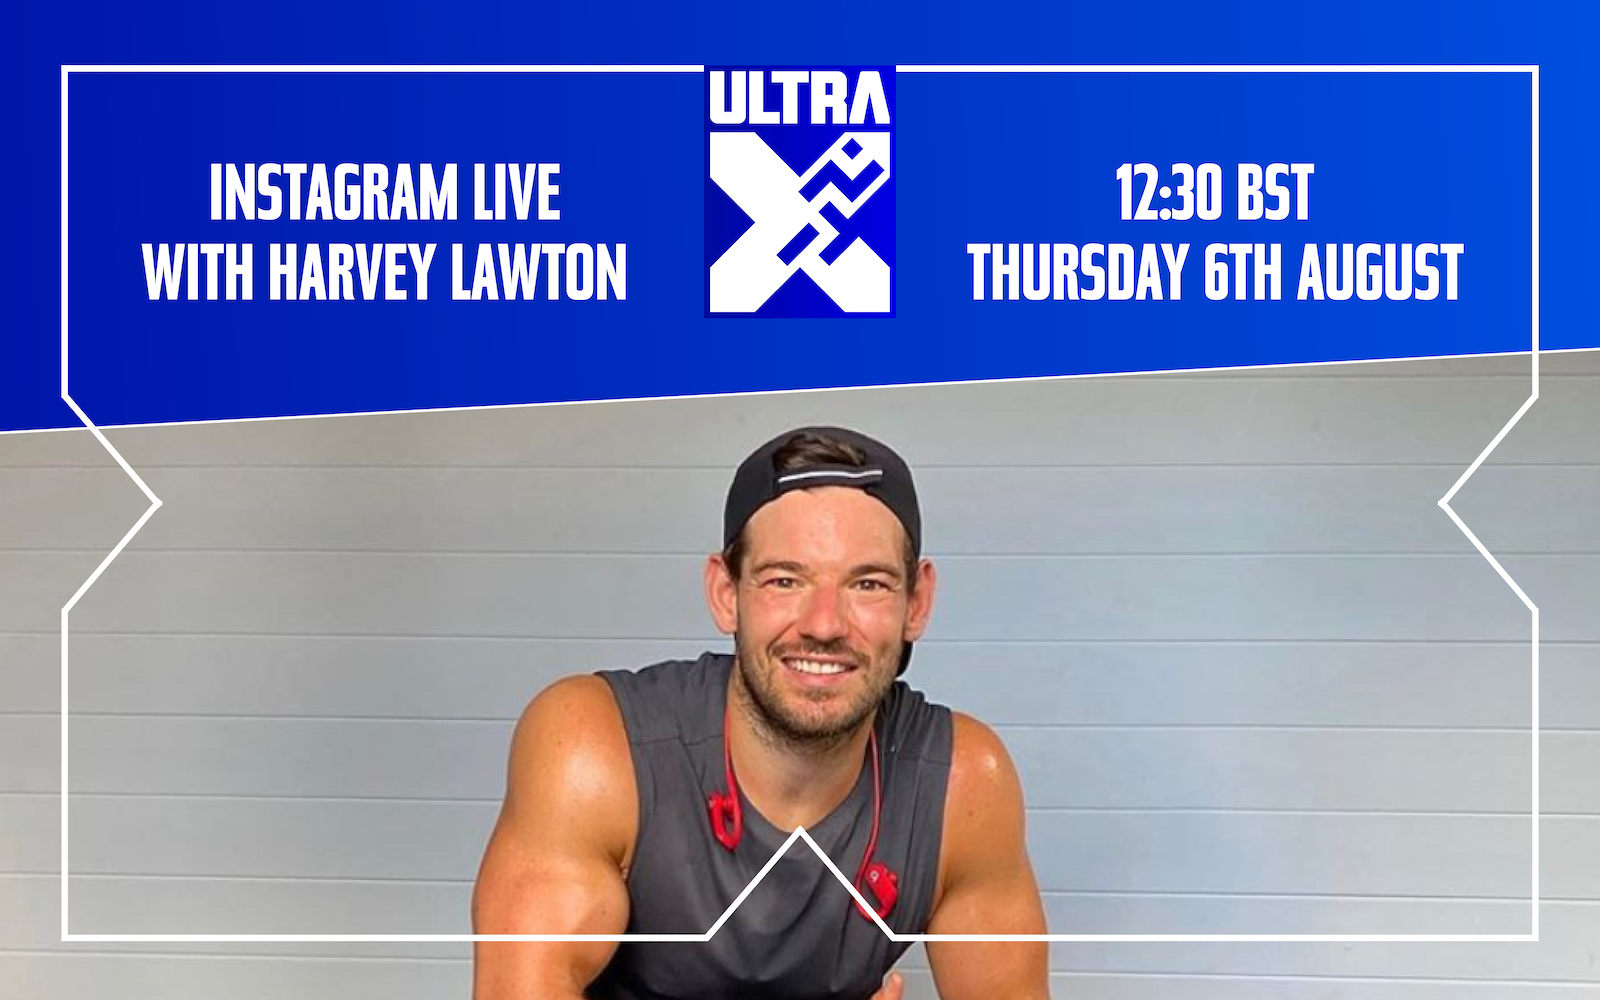 Harvey Lawton Strength Training Ultra Runner